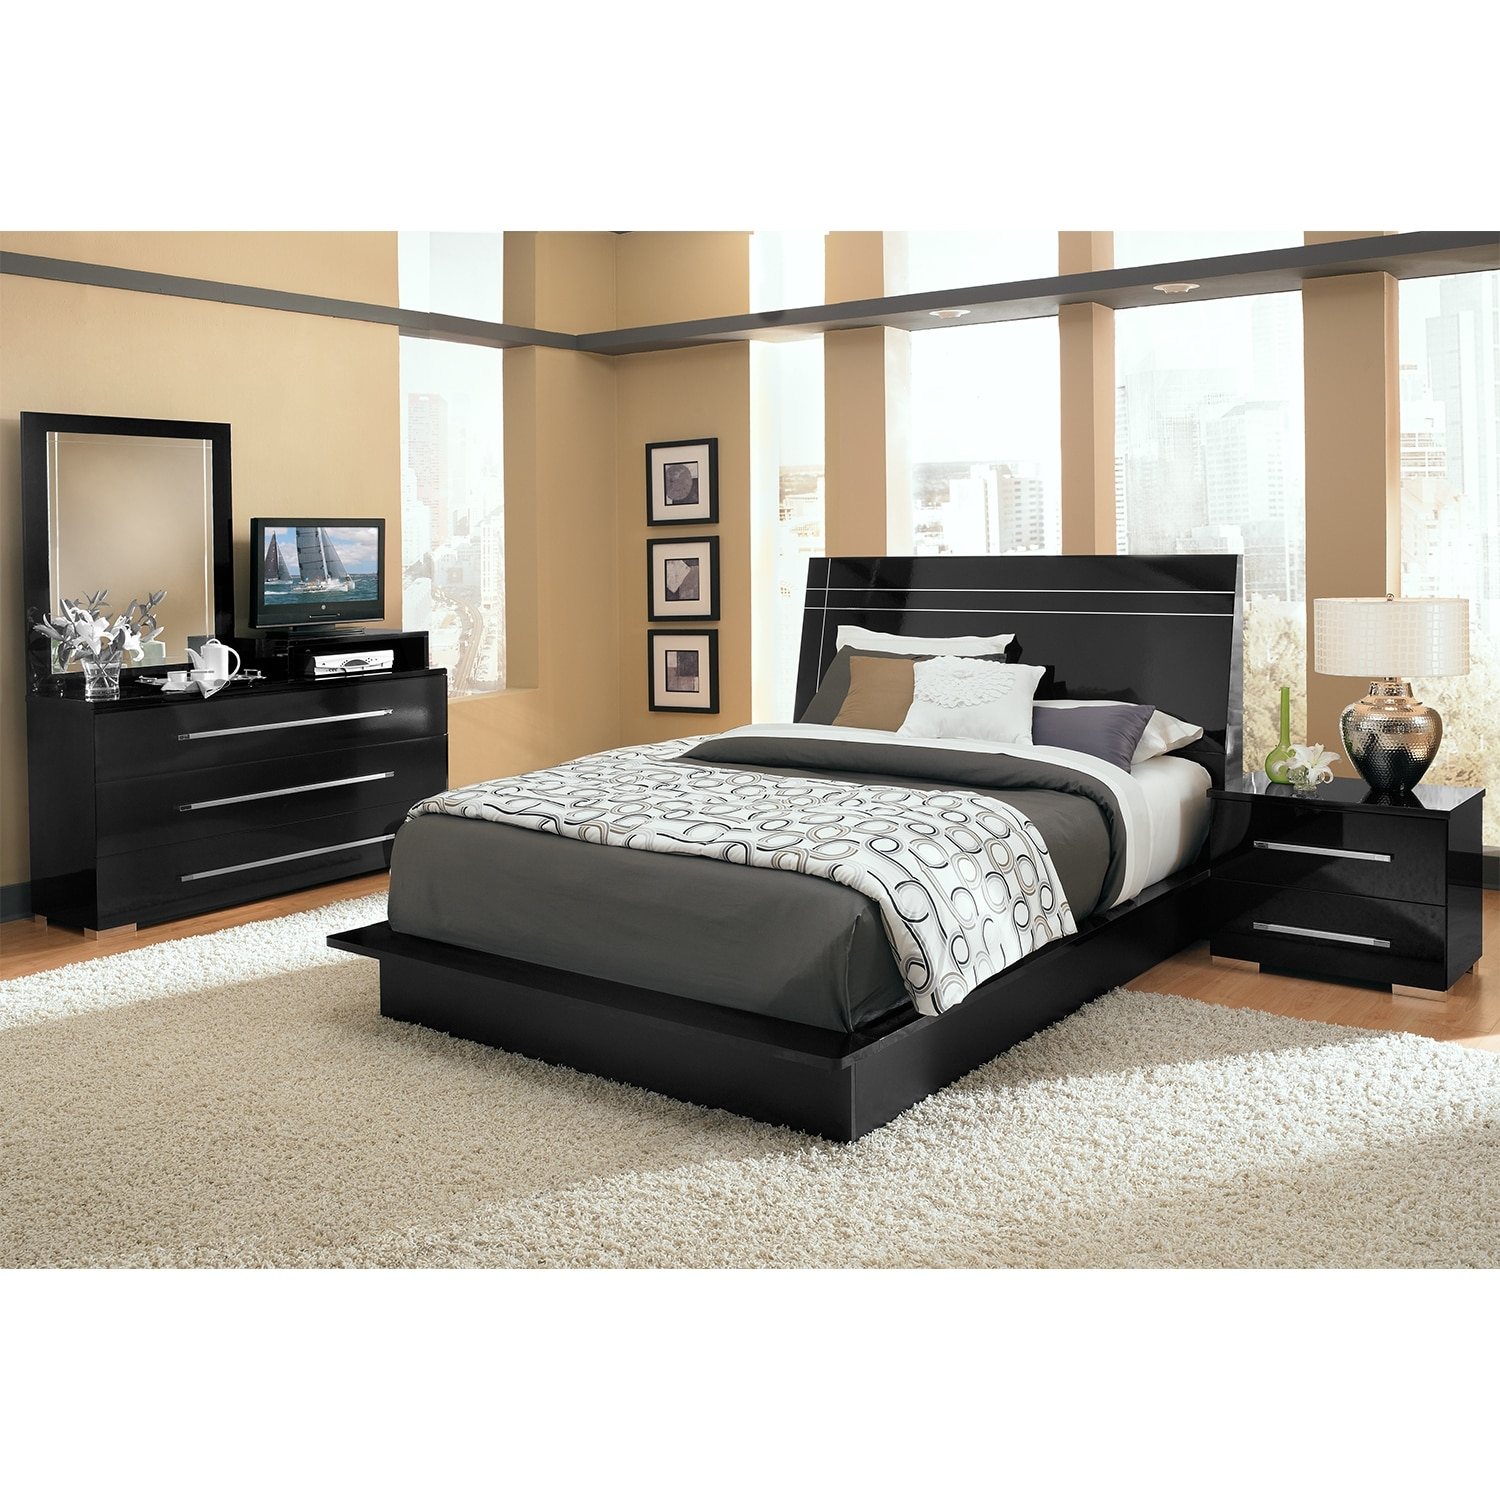 Bedroom Furniture - Dimora Black II 6 Pc. King Bedroom